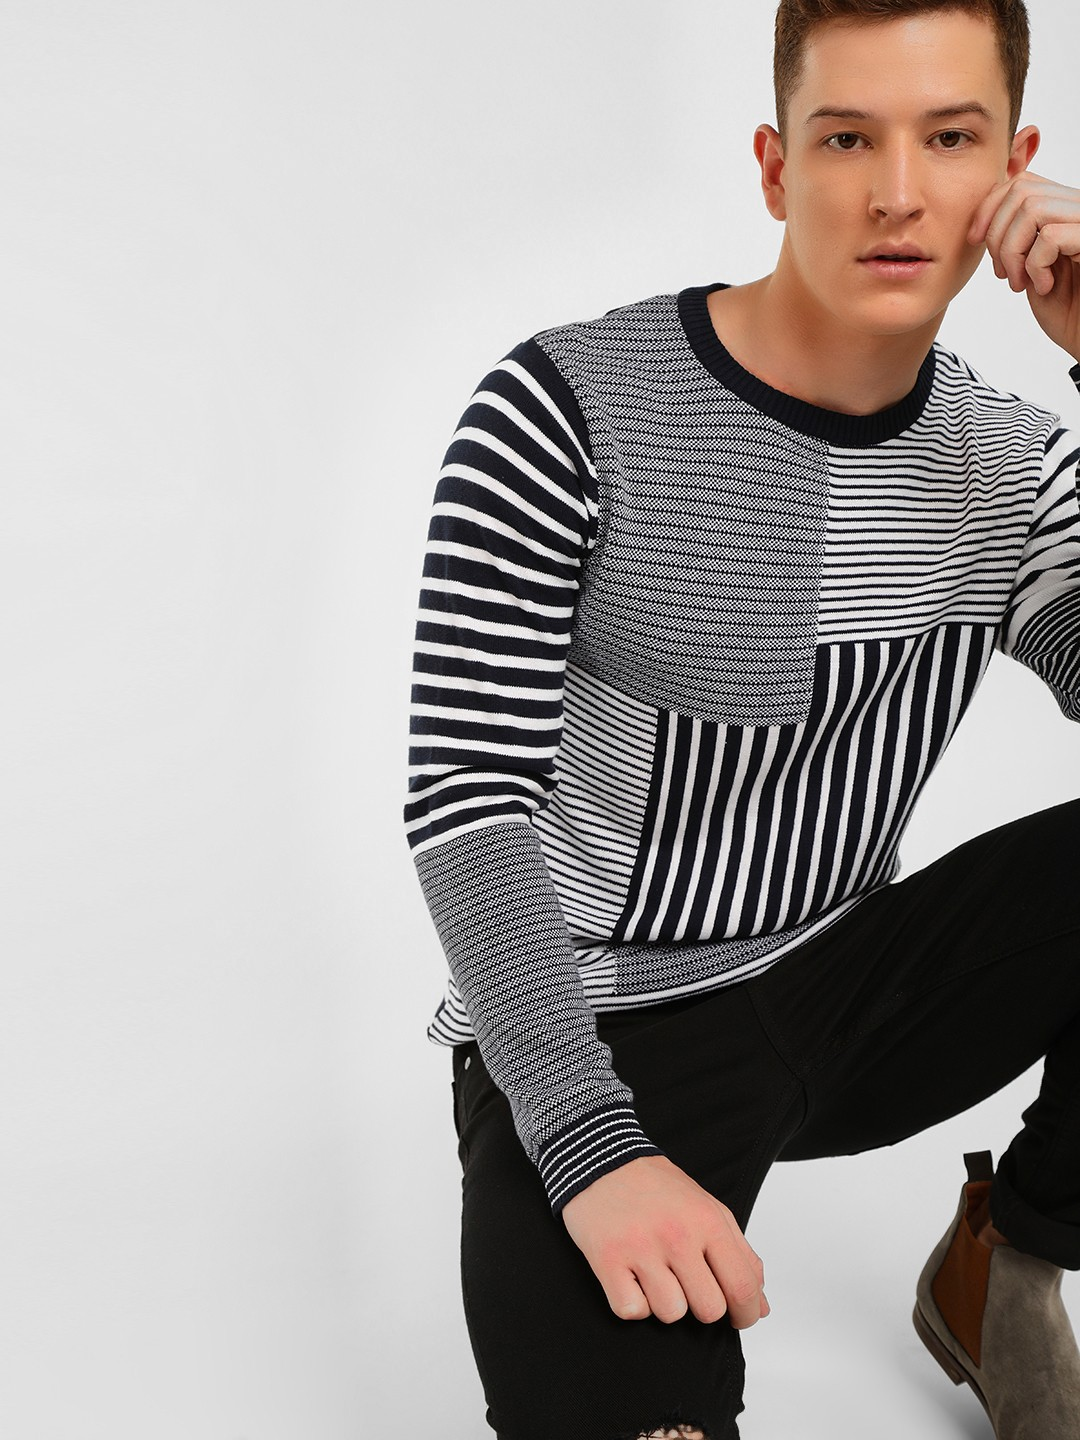 KOOVS Multi Patchwork Stripe Knitted Jacquard Sweater 1